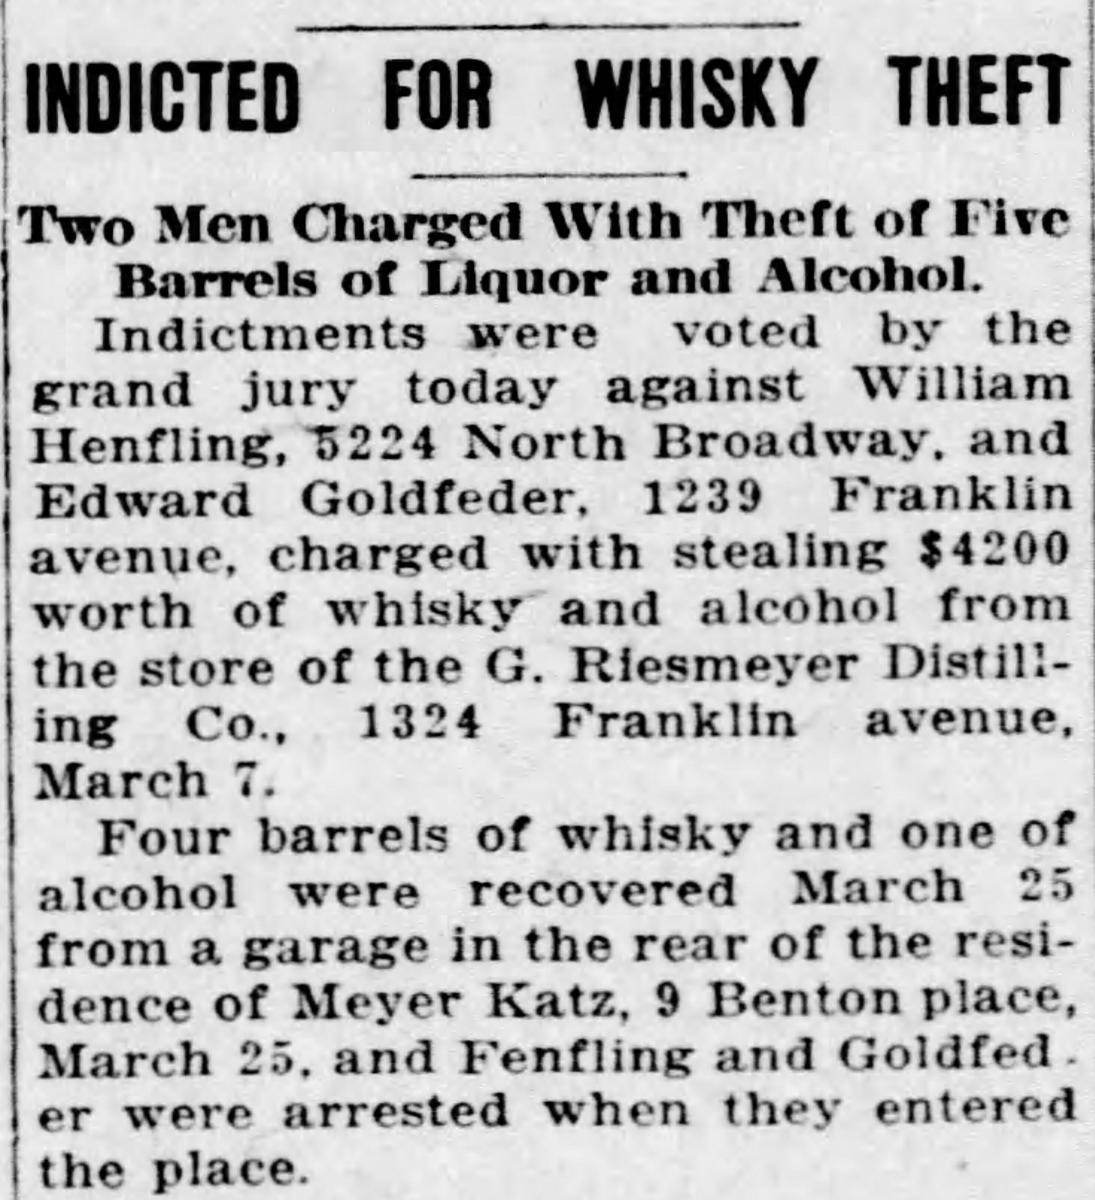 Scan of news article about whiskey theft